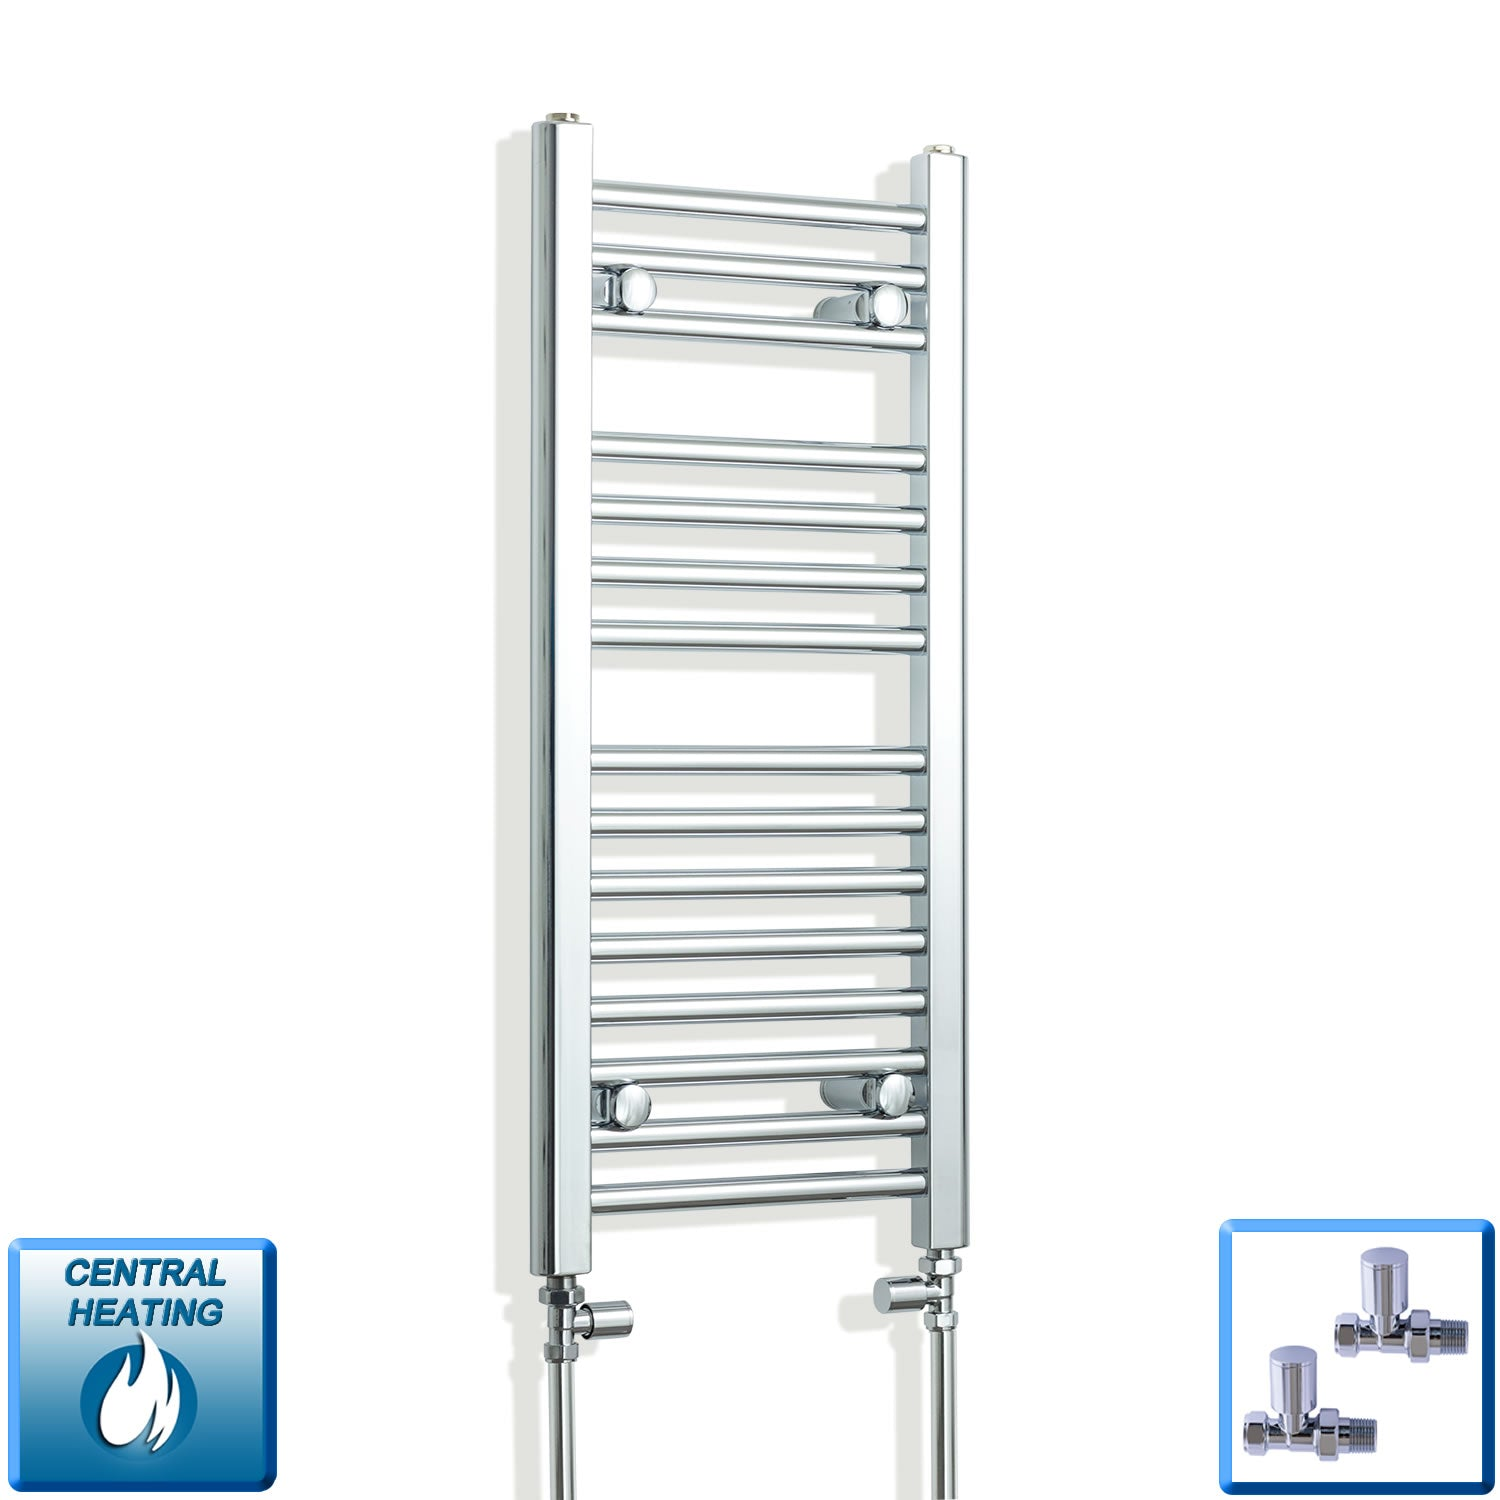 350mm Wide 800mm High Chrome Towel Rail Radiator With Straight Valve